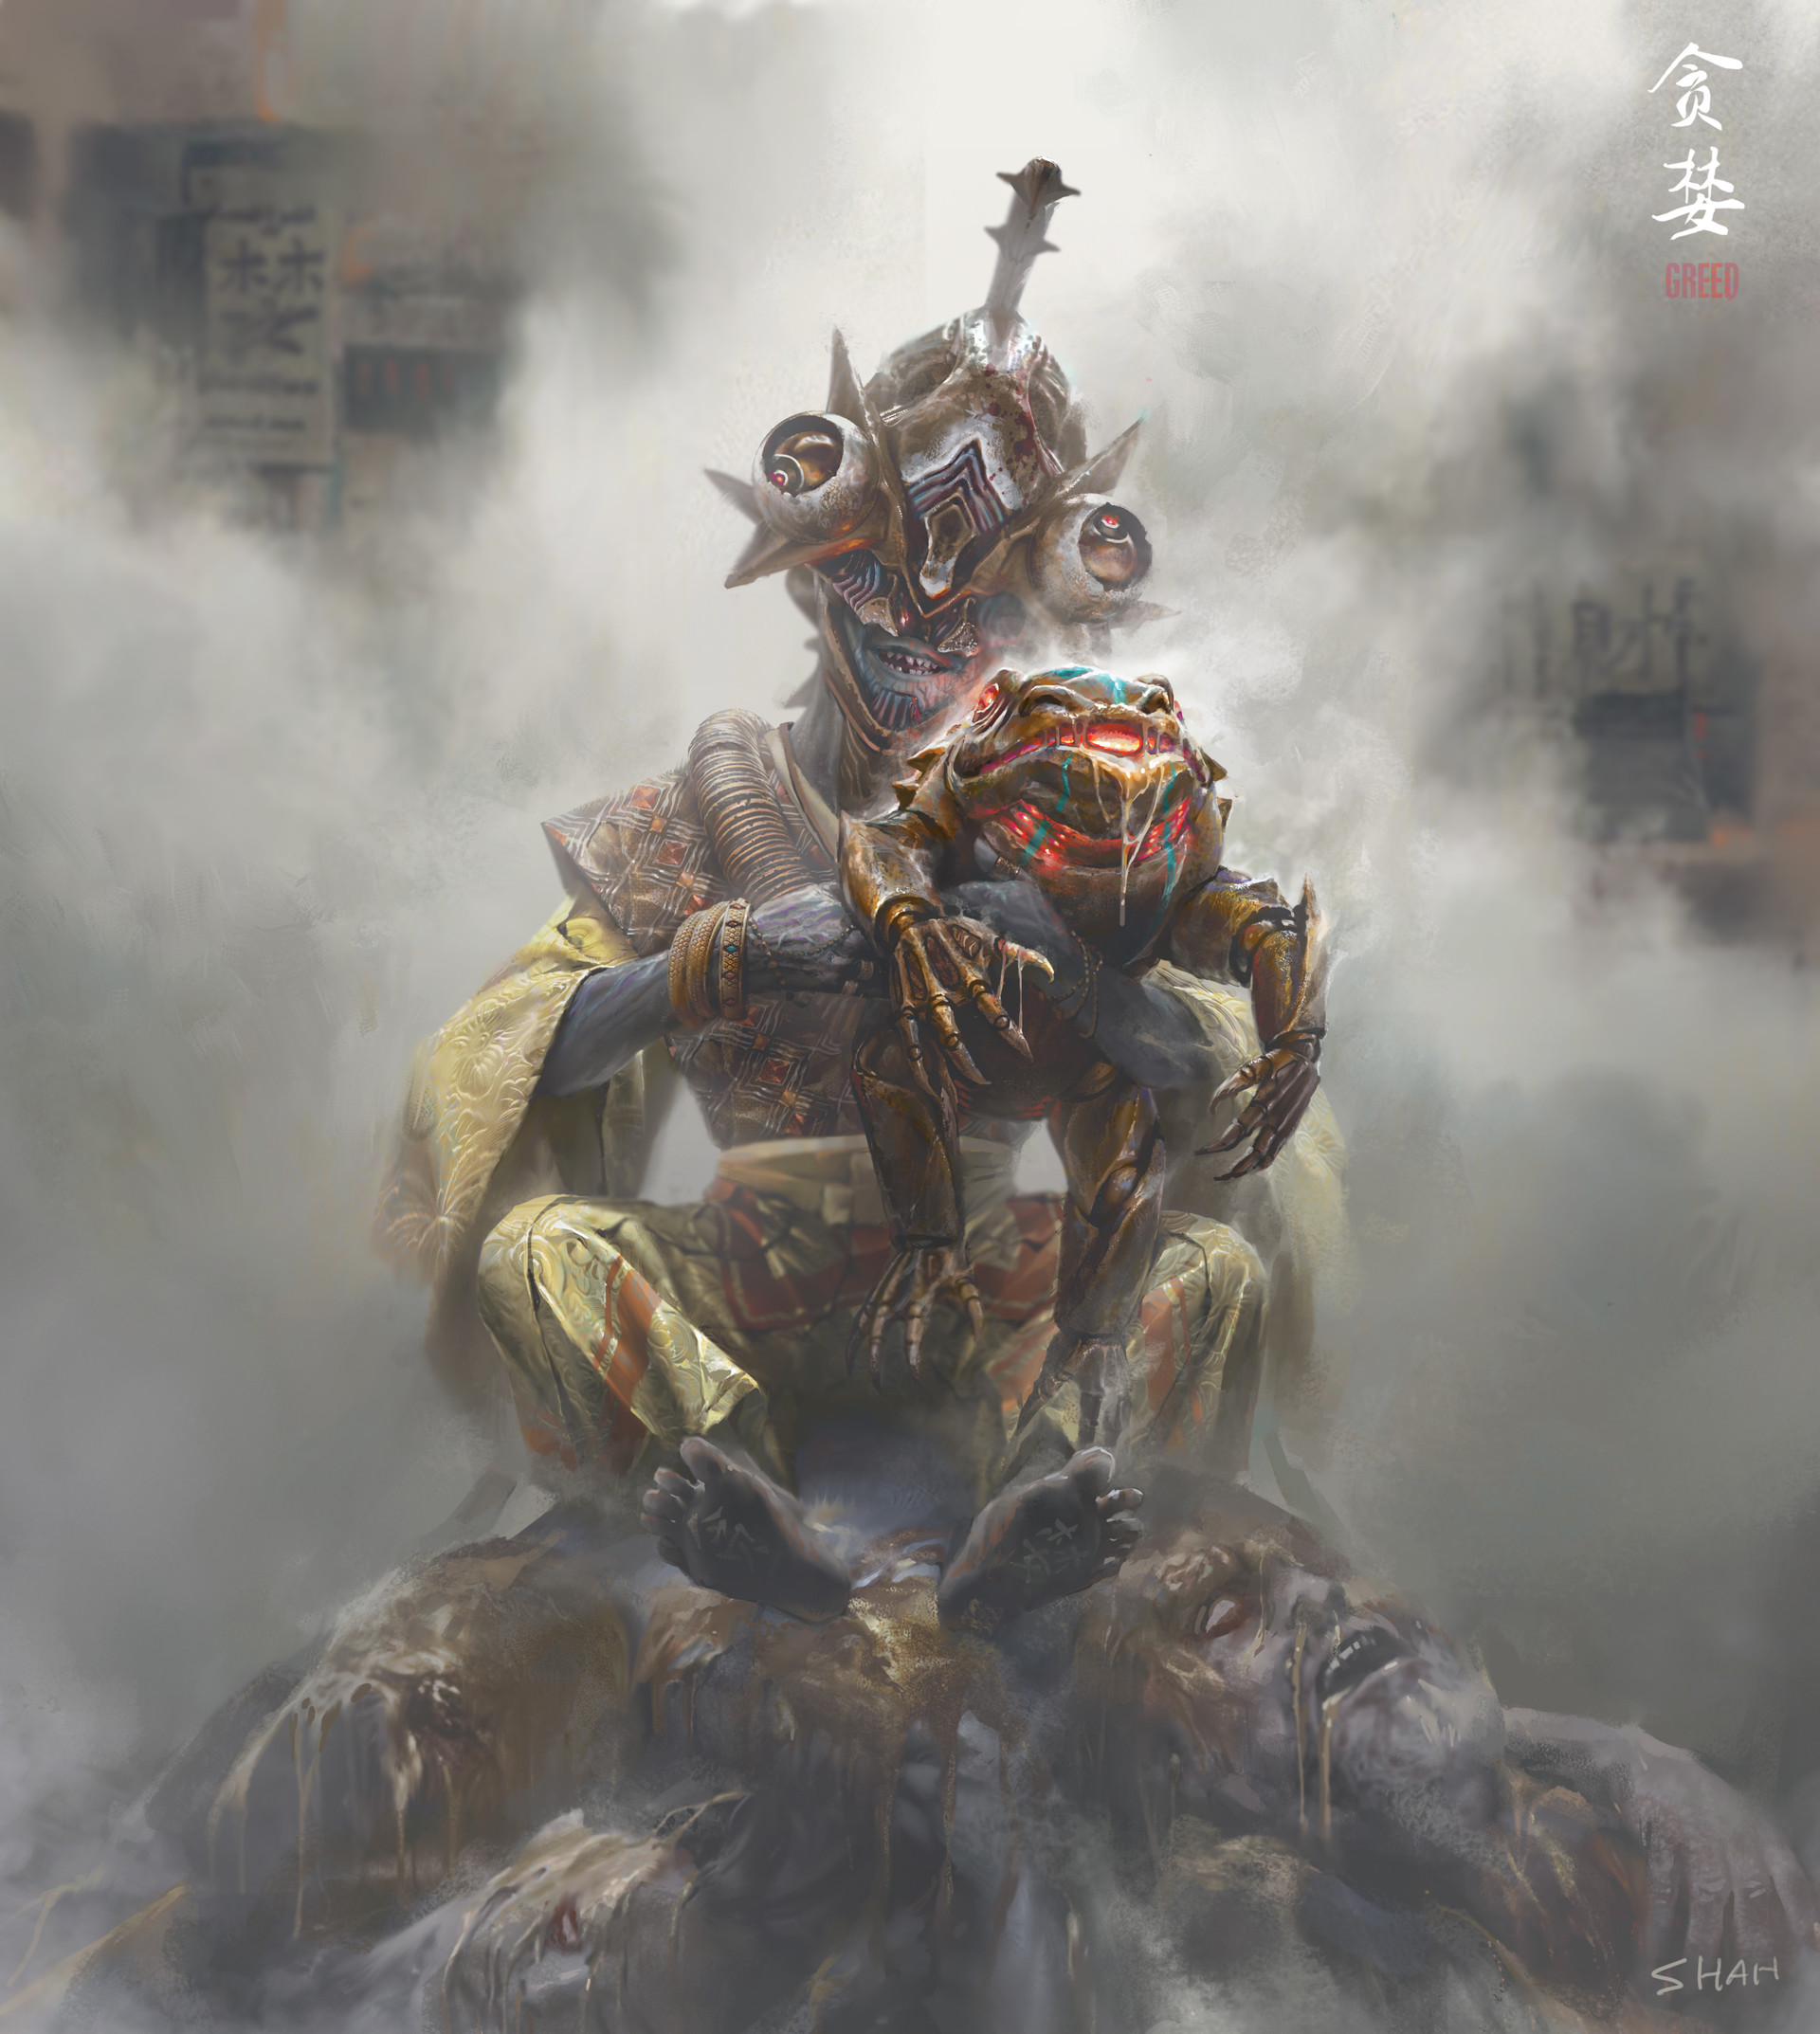 Shan qiao greed render